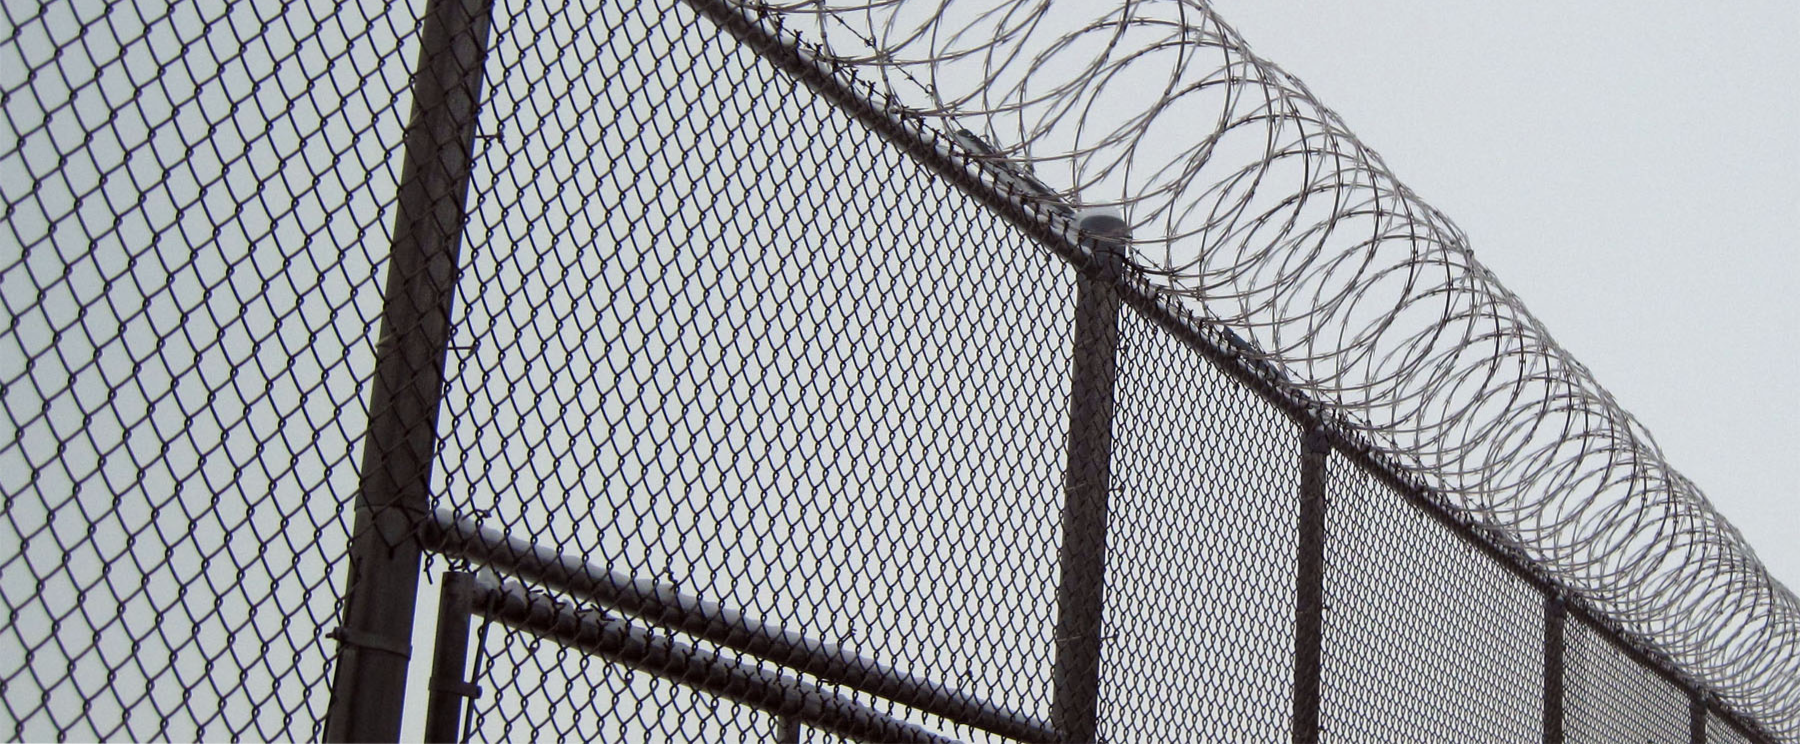 Lawmakers push for hearing, 'transparency' on prison health care